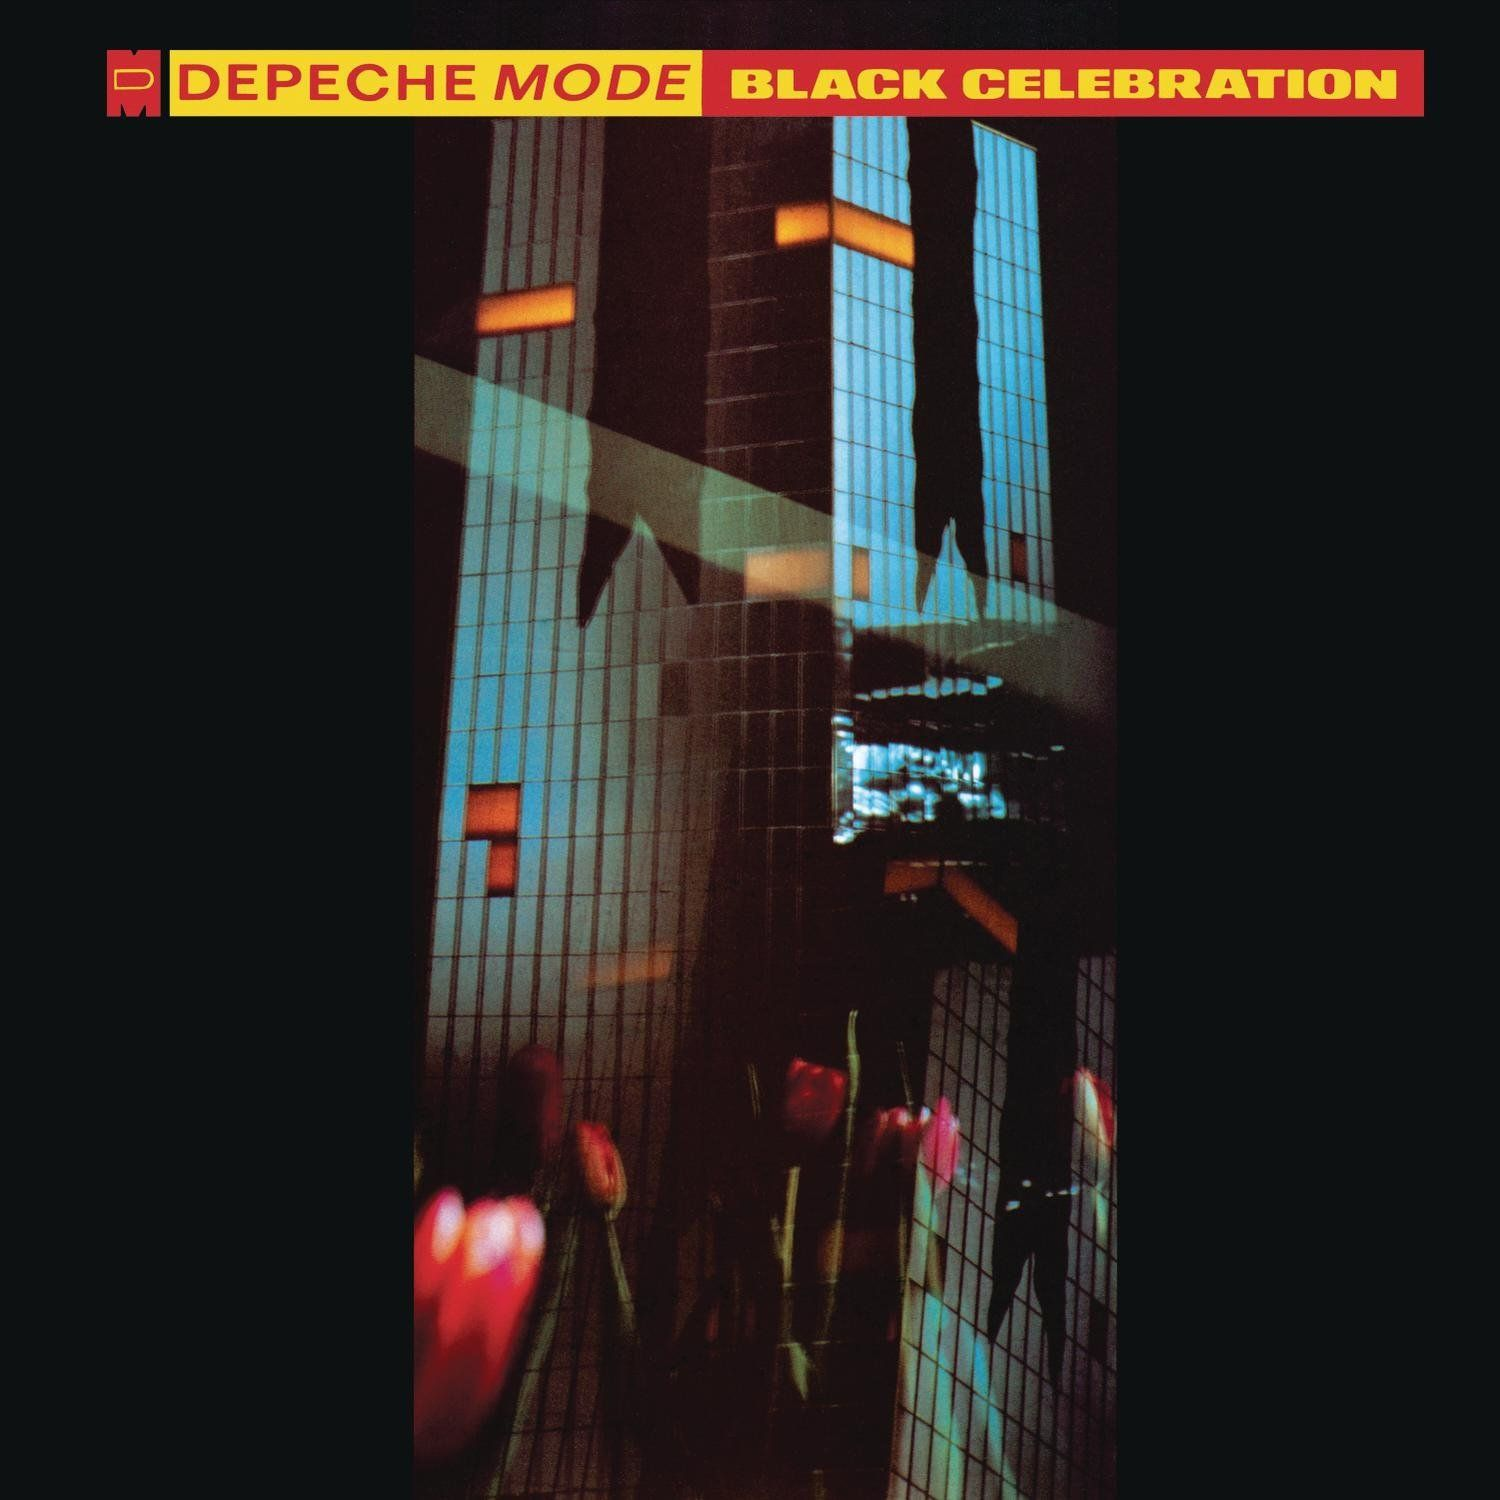 1986 Black Celebration 1500 1500 Depeche Mode Black Celebration Depeche Mode Depeche Mode Songs